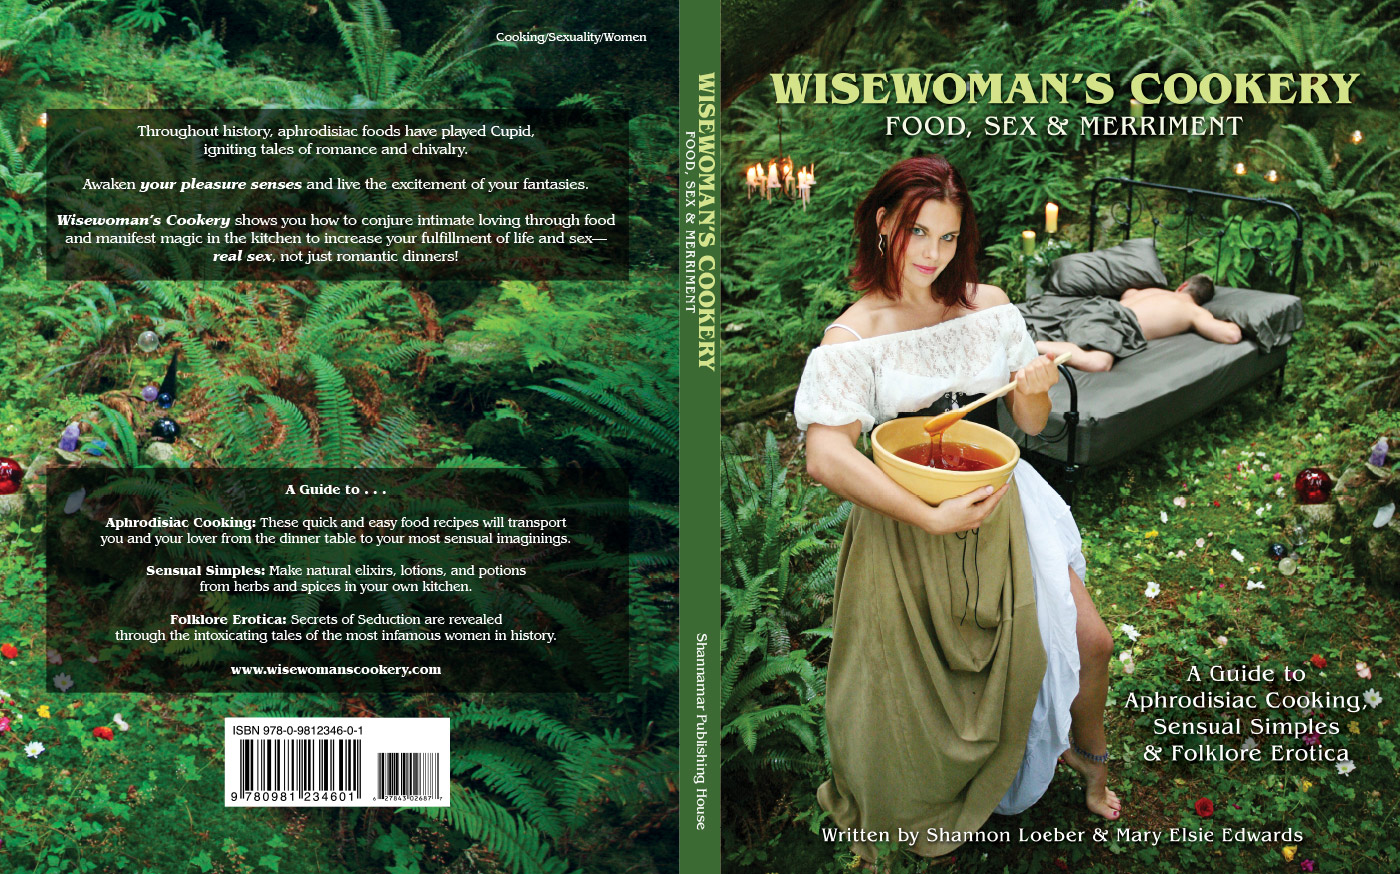 Wisewoman's Cookery